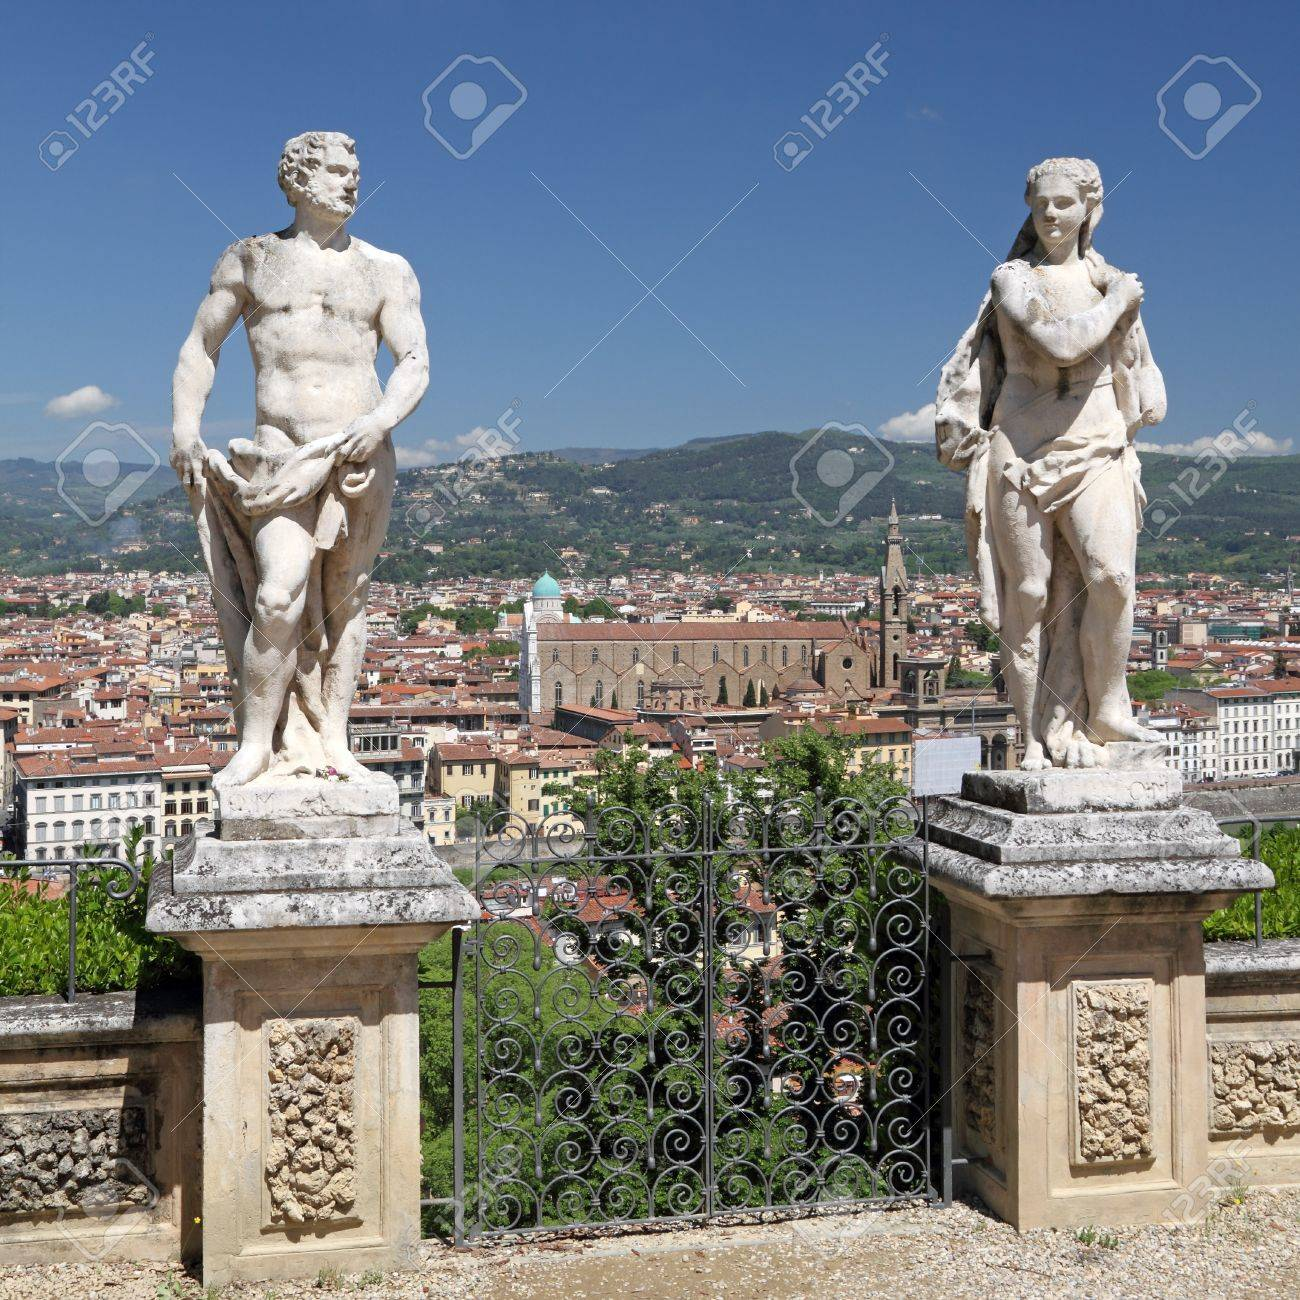 Antique Garden Statues In Bardini Garden And Spectacular View